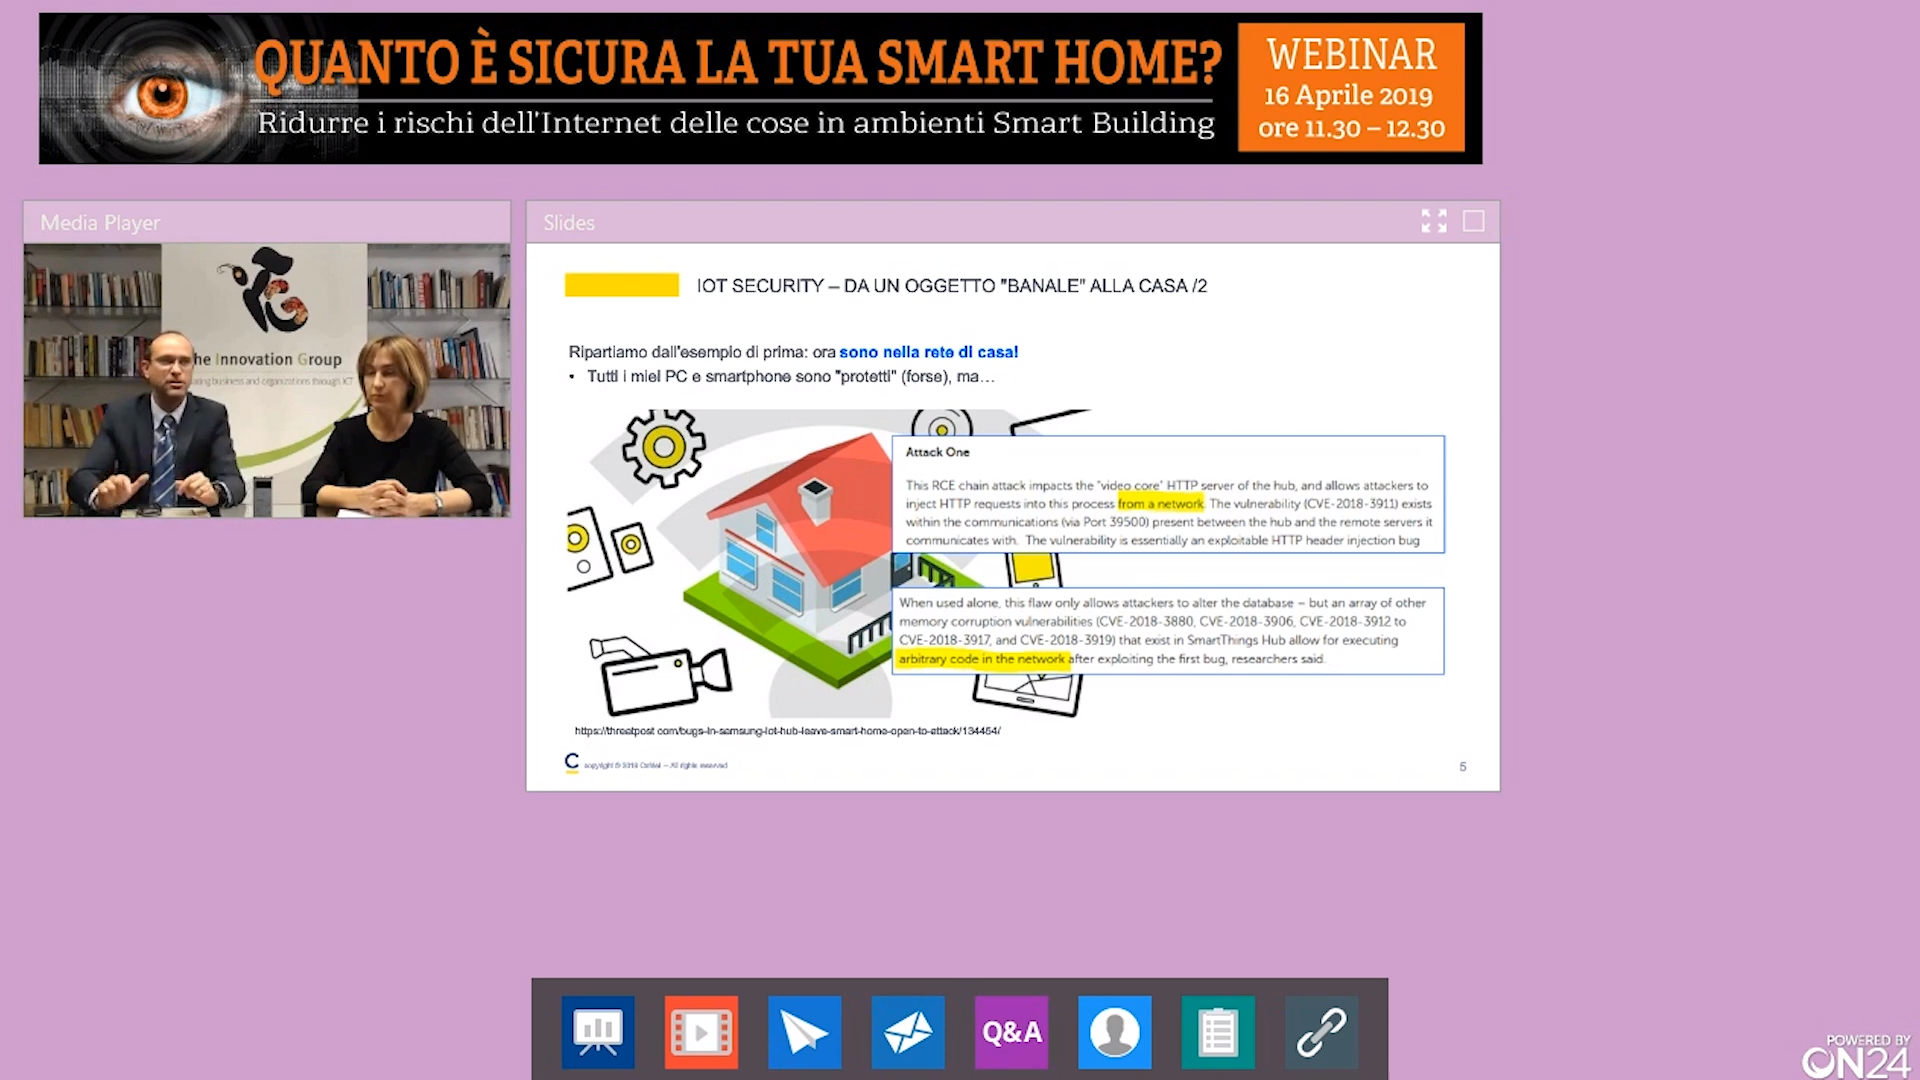 http://Online%20il%20webinar%20Smart%20Home%20Security